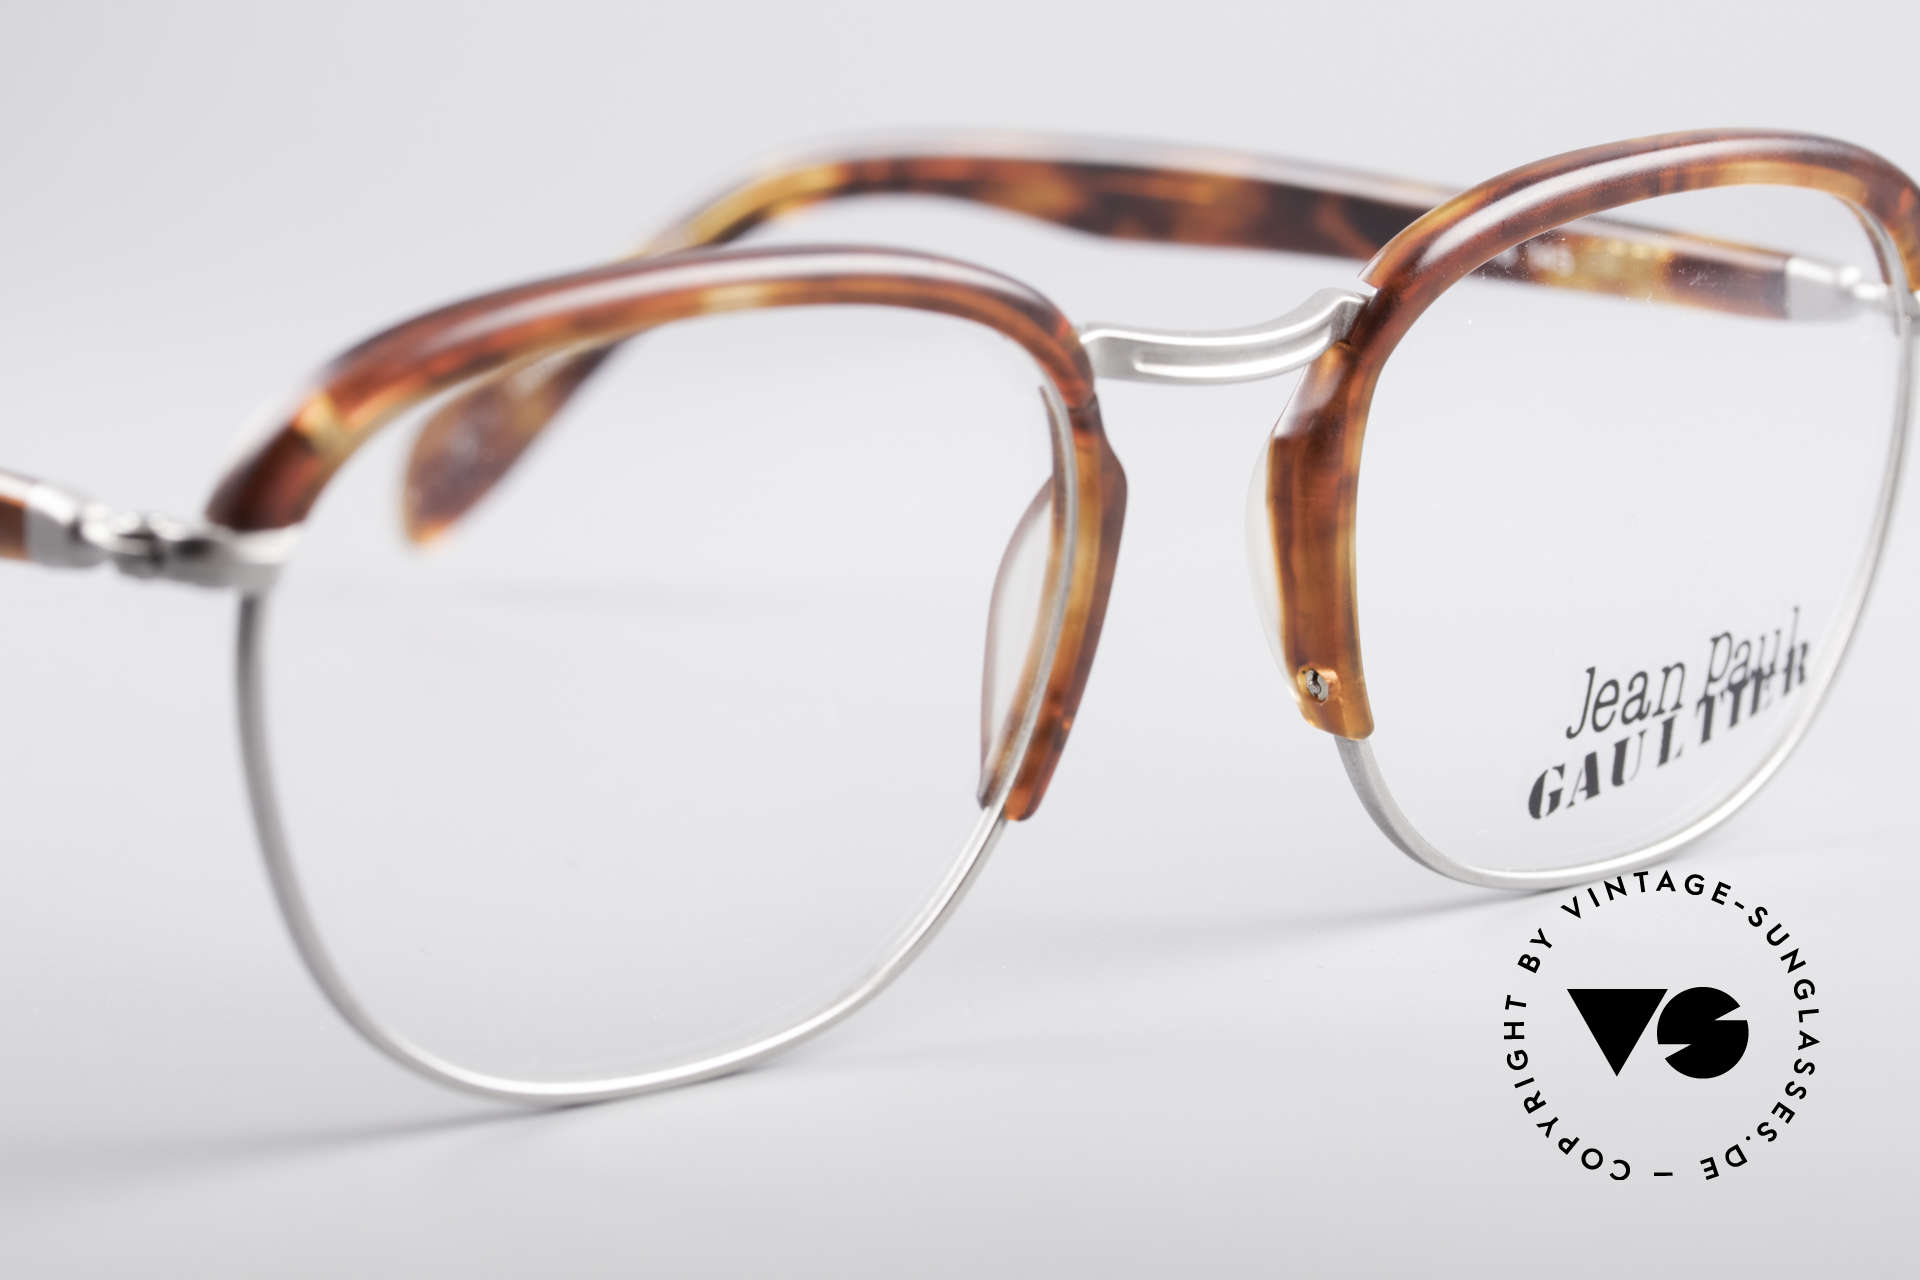 Jean Paul Gaultier 55-1273 Vintage 90's Specs, NO retro specs, but an old original from 1993, Made for Men and Women